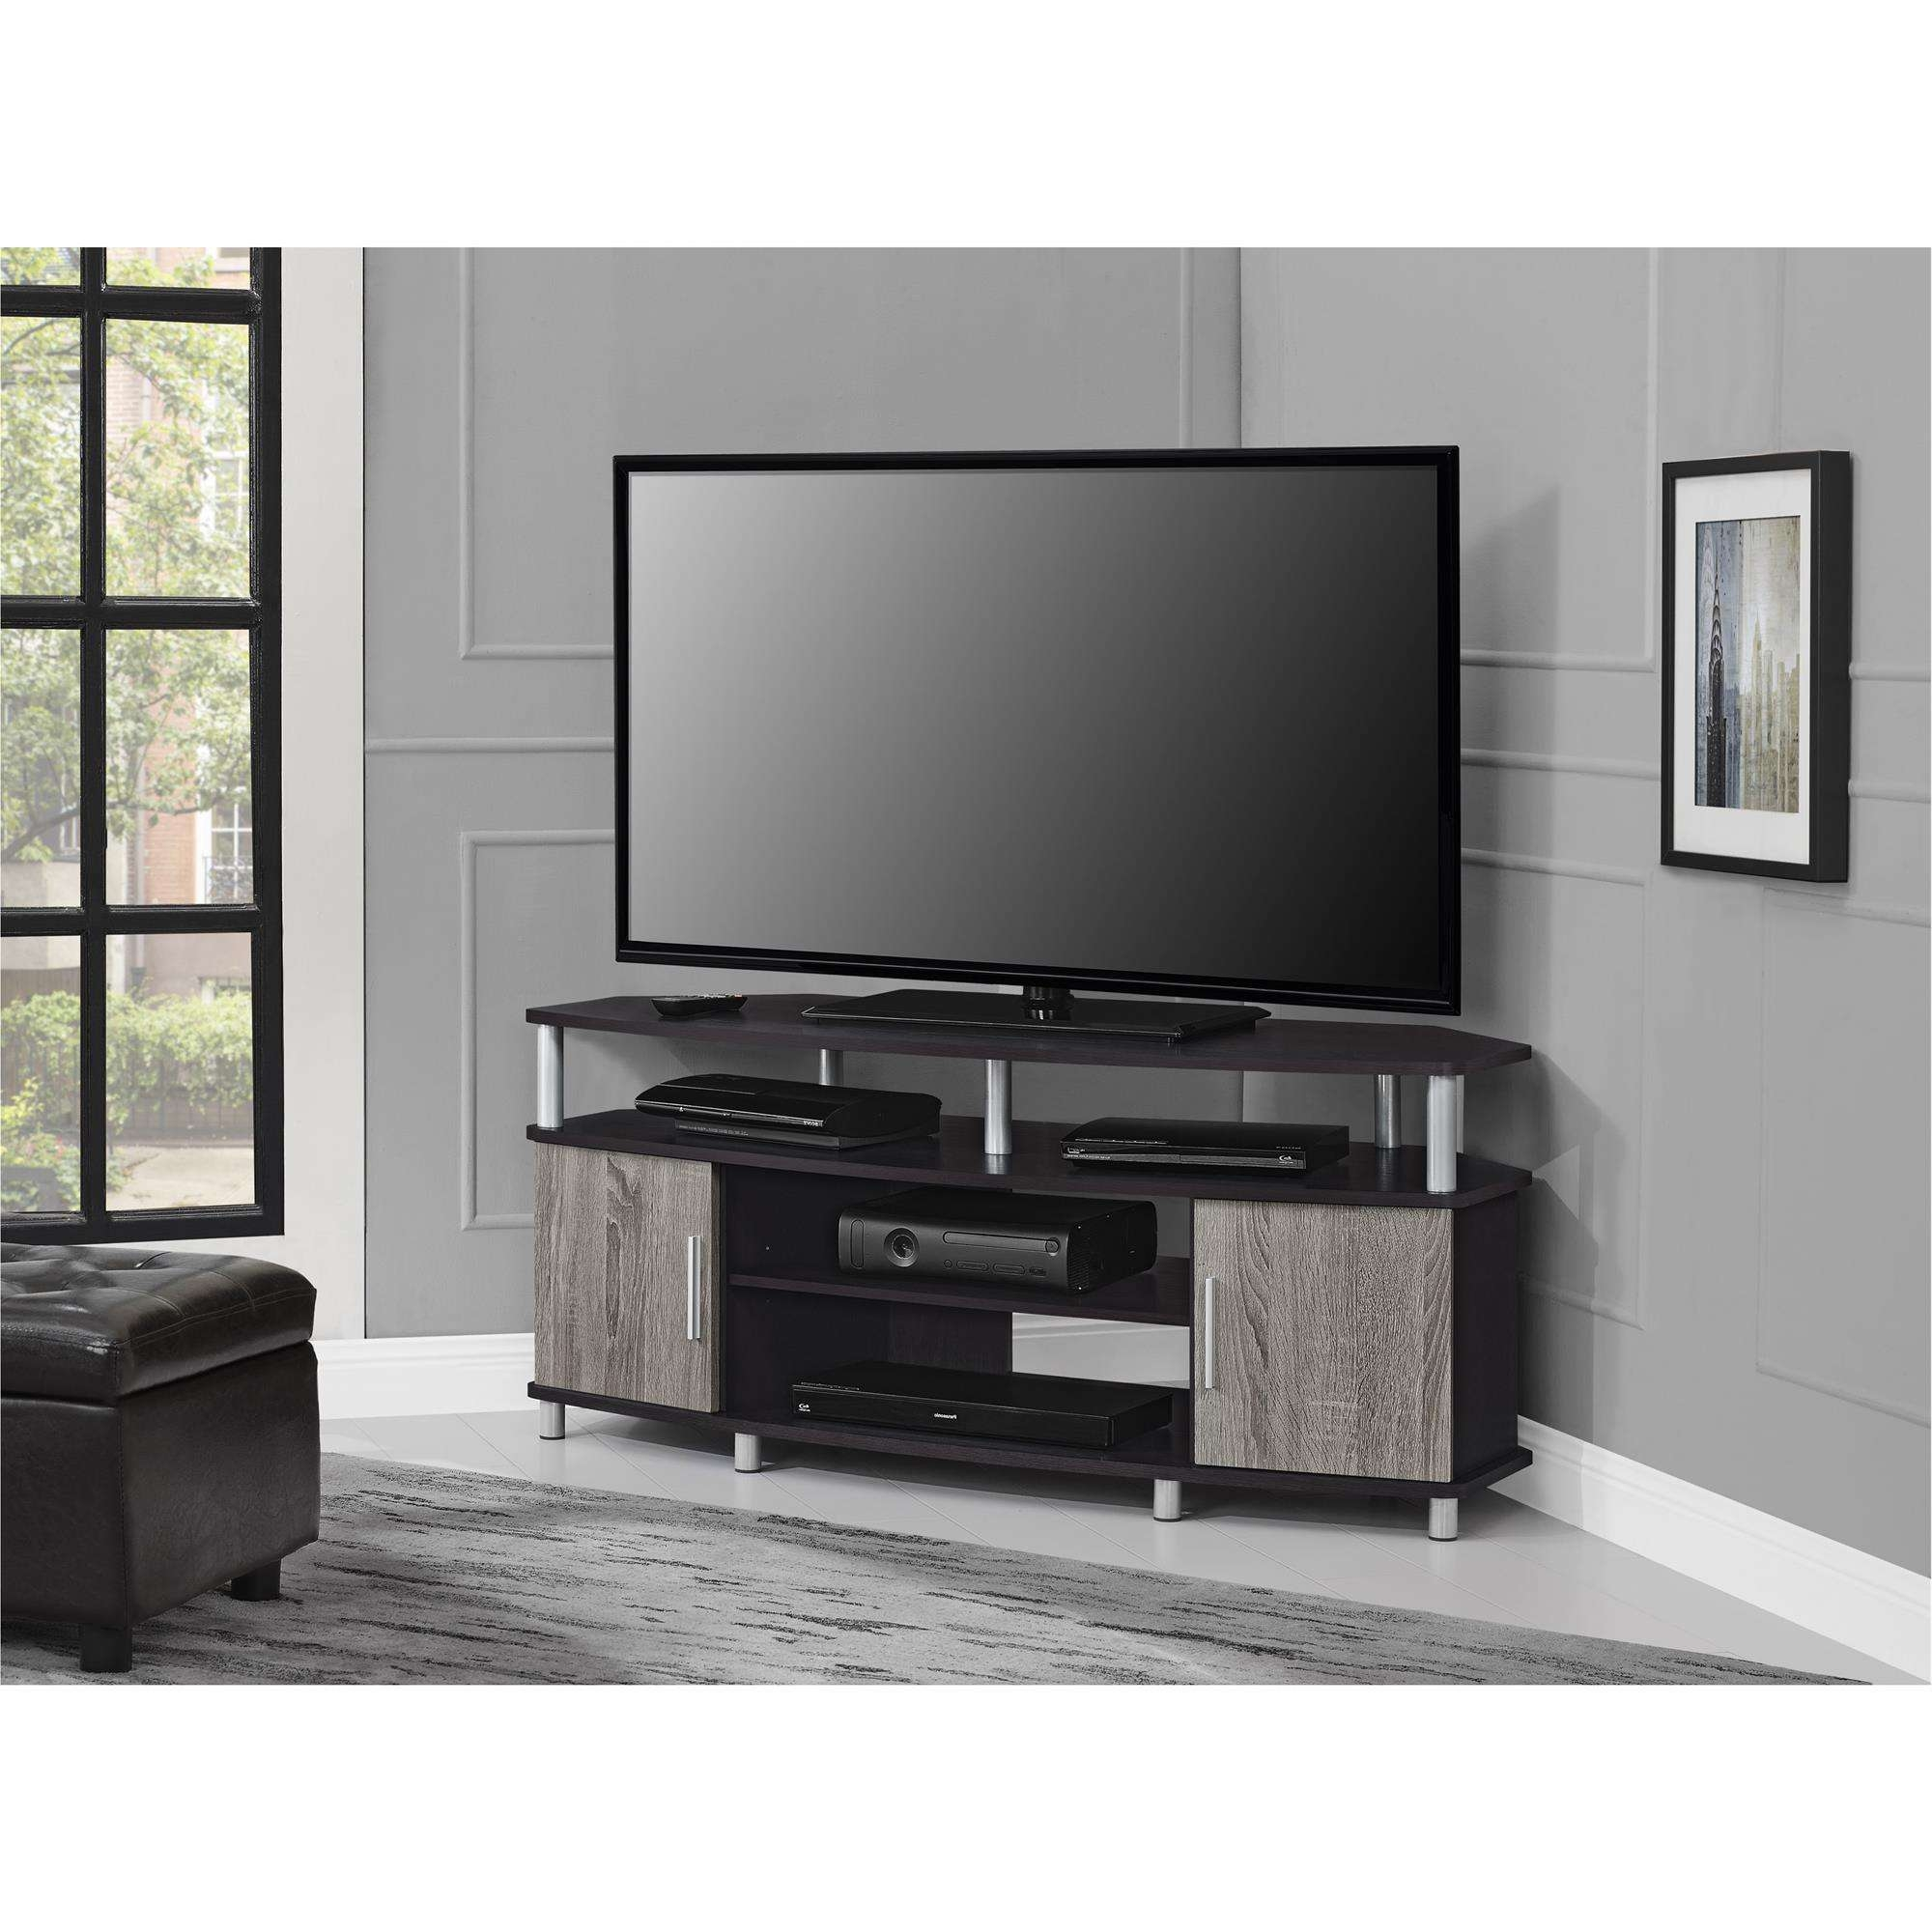 """Ameriwood Home Carson Corner Tv Stand For Tvs Up To 50"""" Wide Intended For 50 Inch Corner Tv Cabinets (View 11 of 20)"""